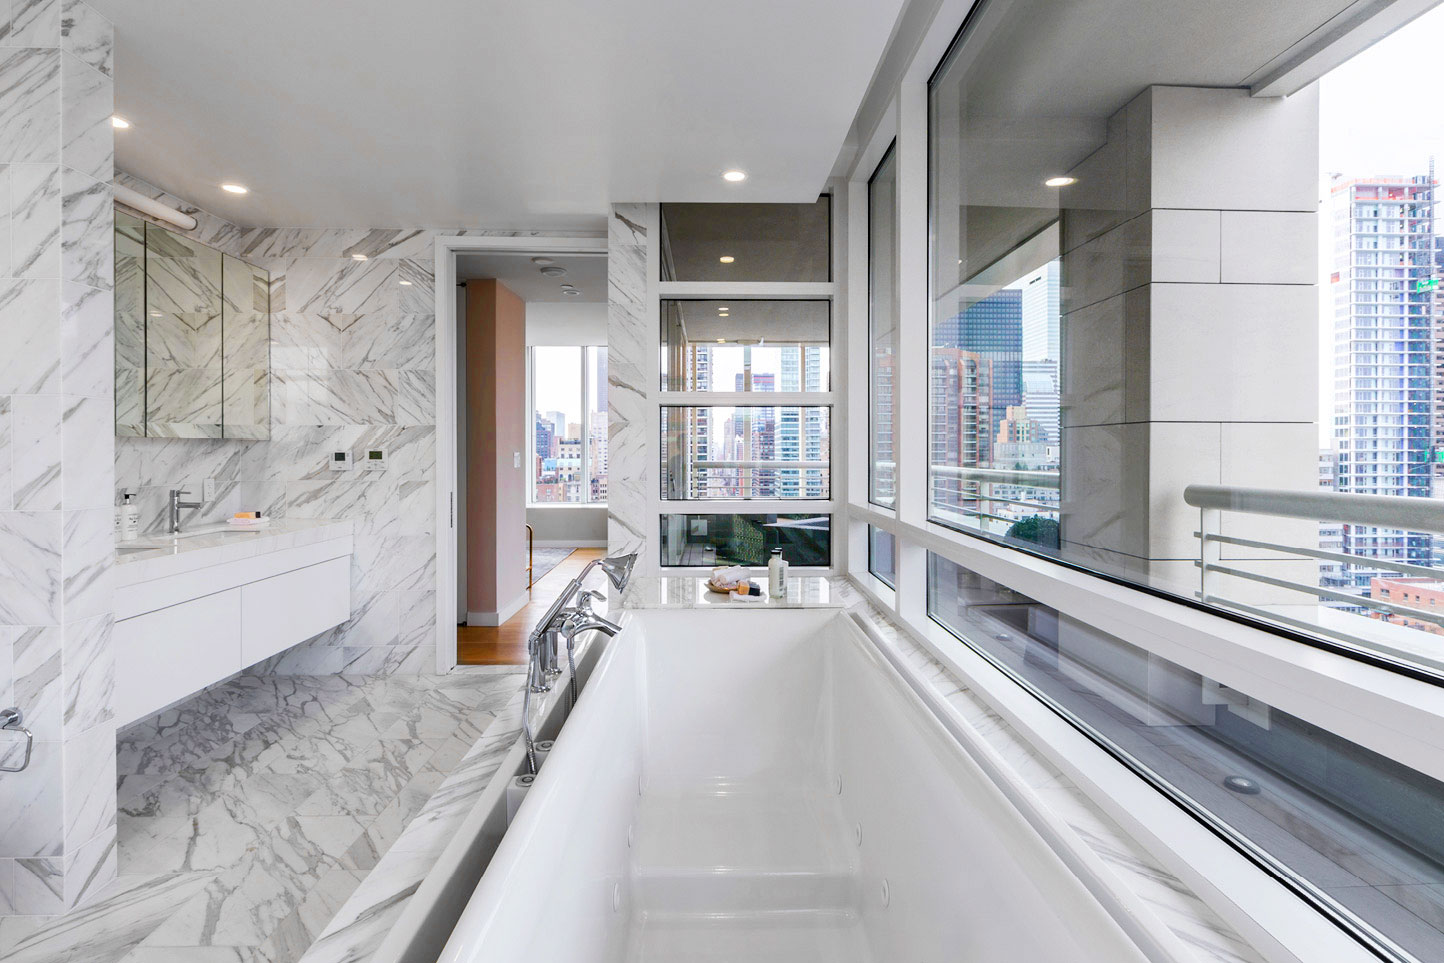 Time To Relax - For the penthouse master bathroom we sourced, custom fabricated and installed fine Italian Calacatta Gold marble slabs throughout. And, in The Clare's remaining 65 luxury bathrooms we installed custom quartz vanity countertops with complimentary porcelain floor and wall tiles.